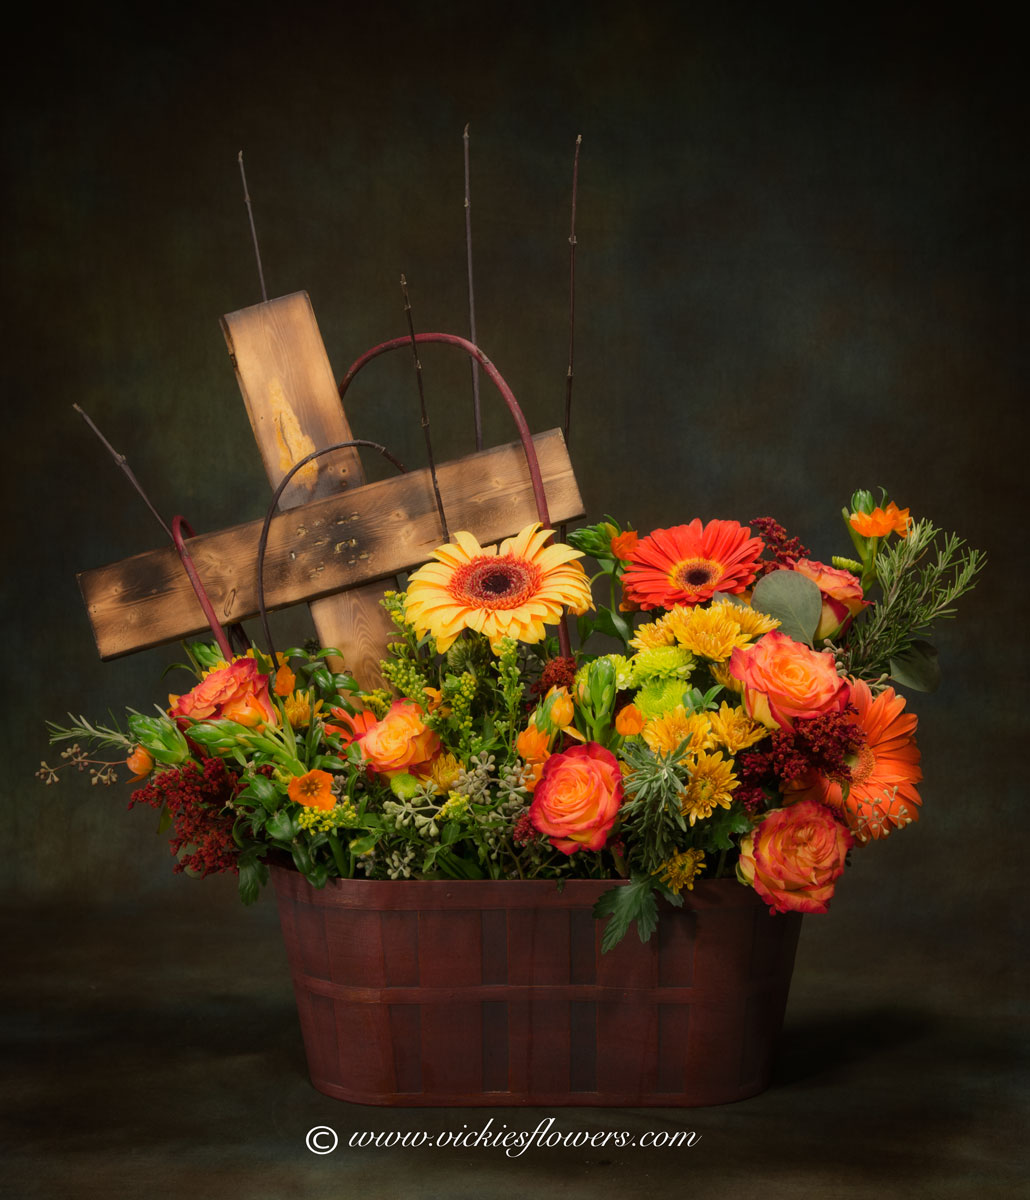 Broncos harley funeral flowers vickies flowers brighton co florist unique themed sympathy 026 195 plus tax and delivery flower basket with custom wooden cross flowers are arranged in a classic dark brown wicker basket izmirmasajfo